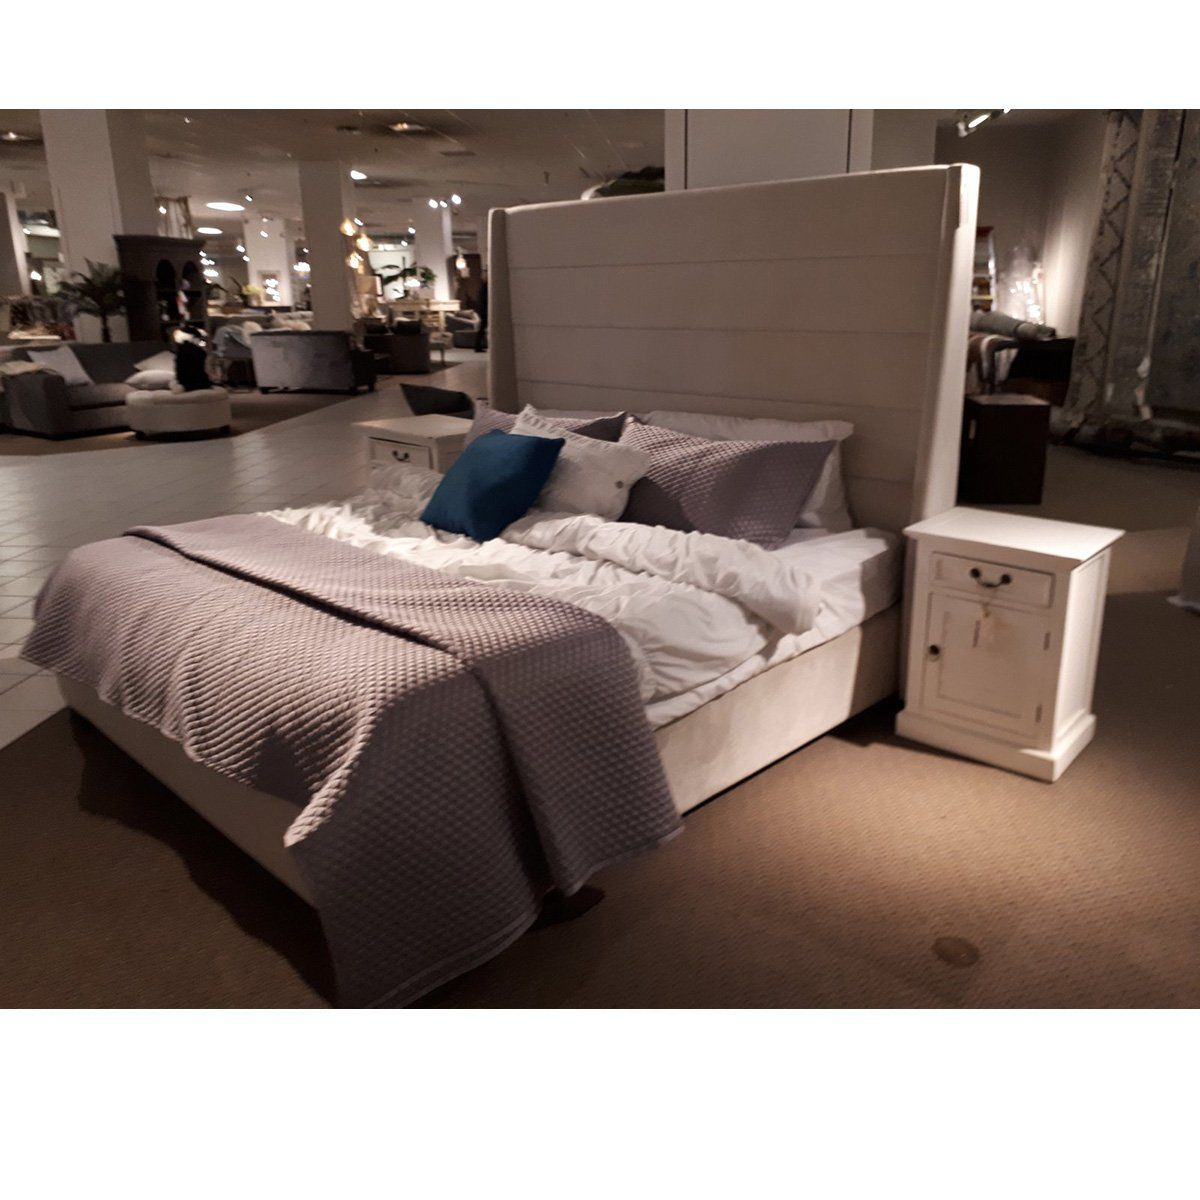 Horizon king complete bed price 1699 bed bed price